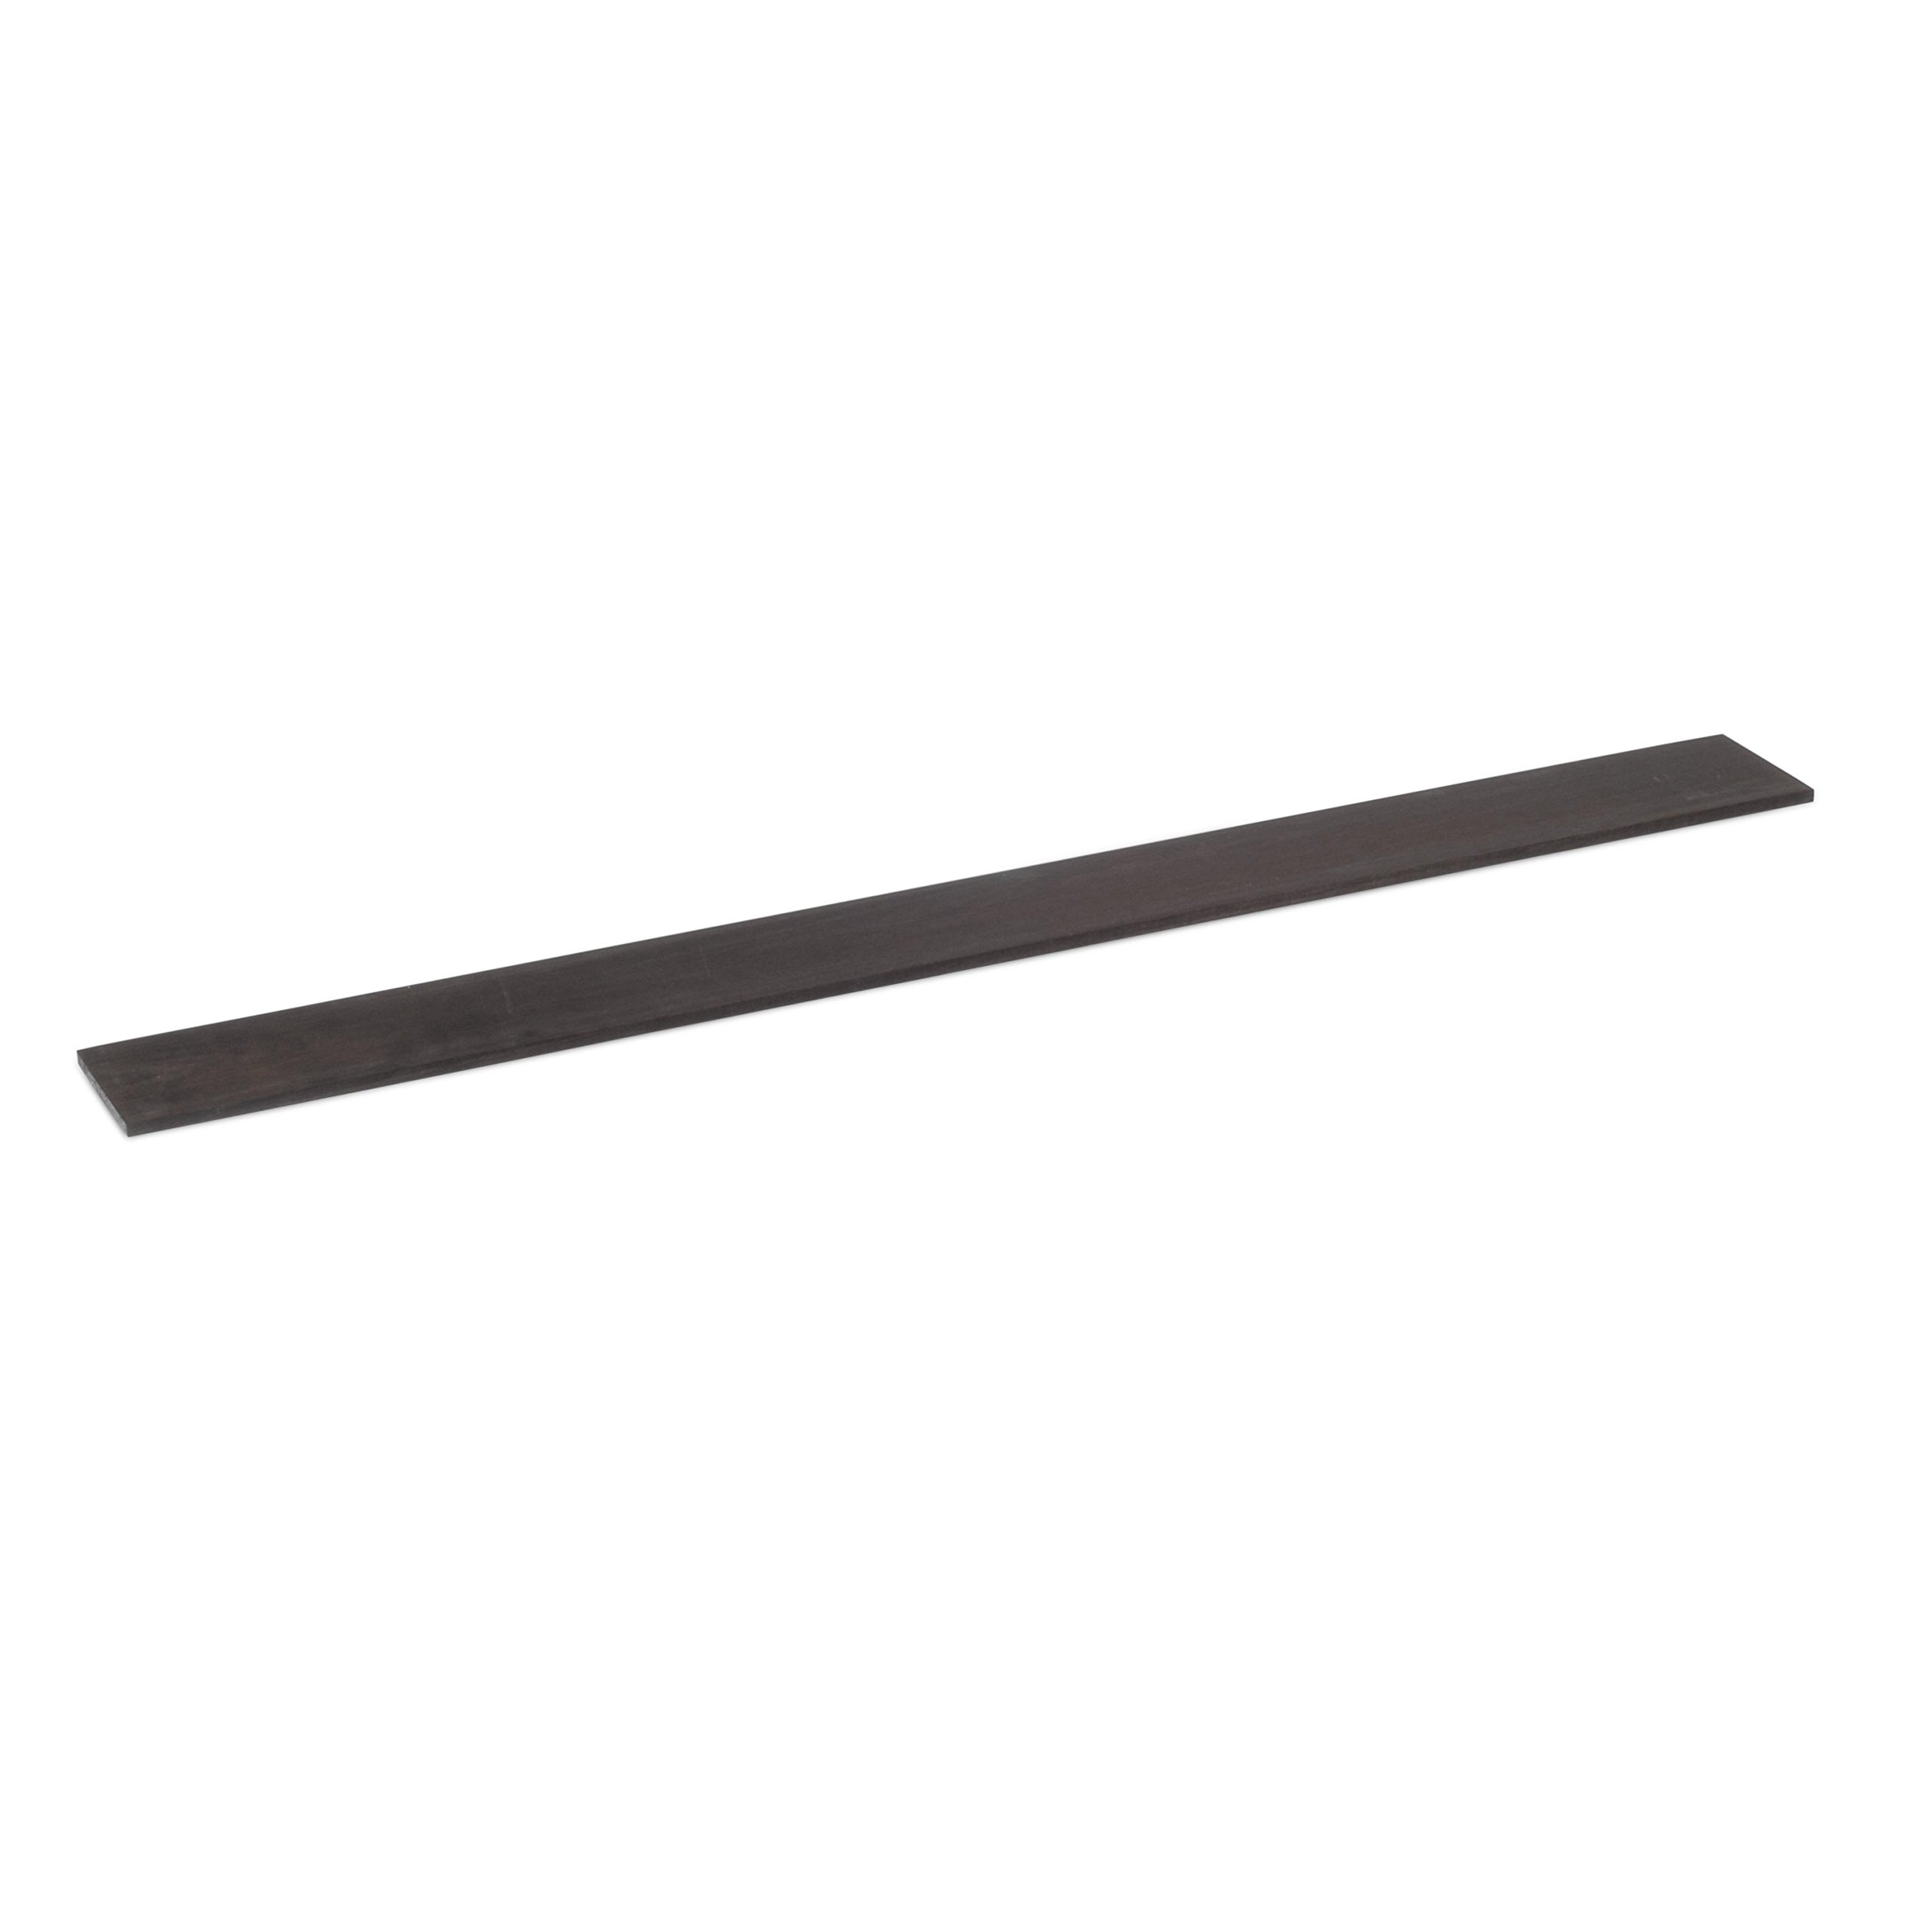 StewMac Unslotted Fingerboard for Bass, Ebony, 3'' Wide